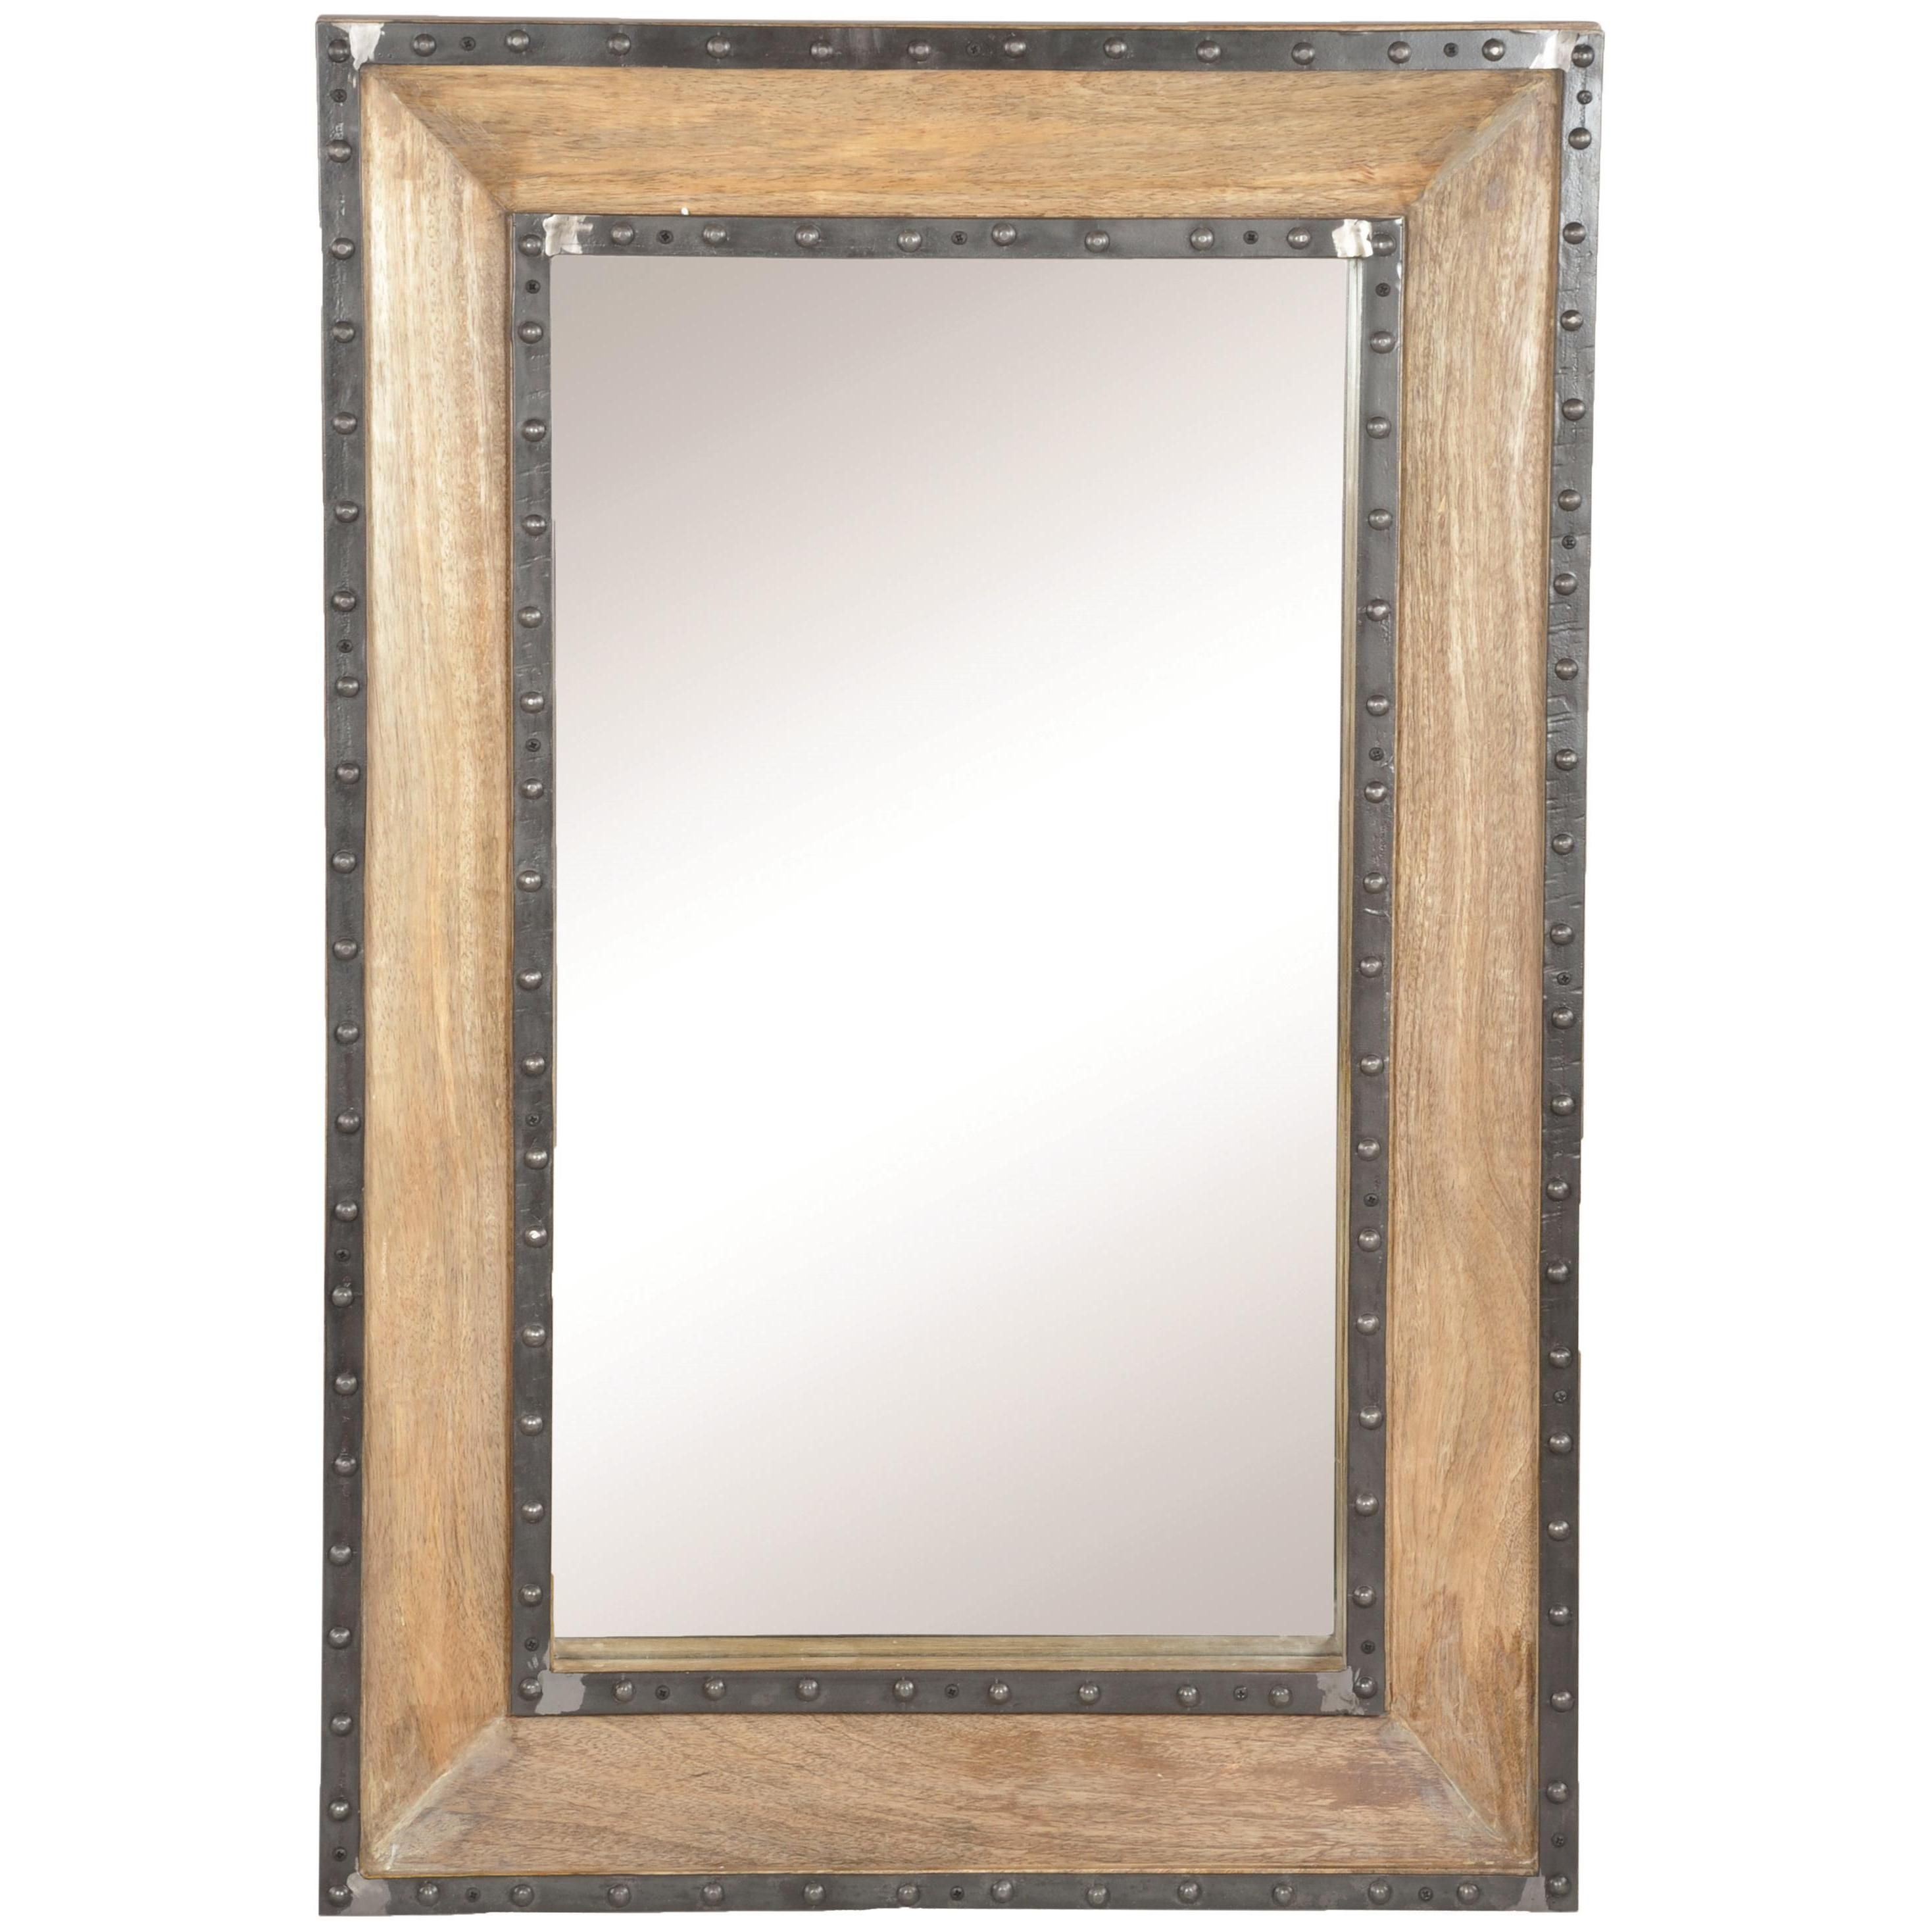 Ren wil caia framed wall mirror overstock shopping the ren wil caia framed wall mirror overstock shopping the best deals on amipublicfo Choice Image